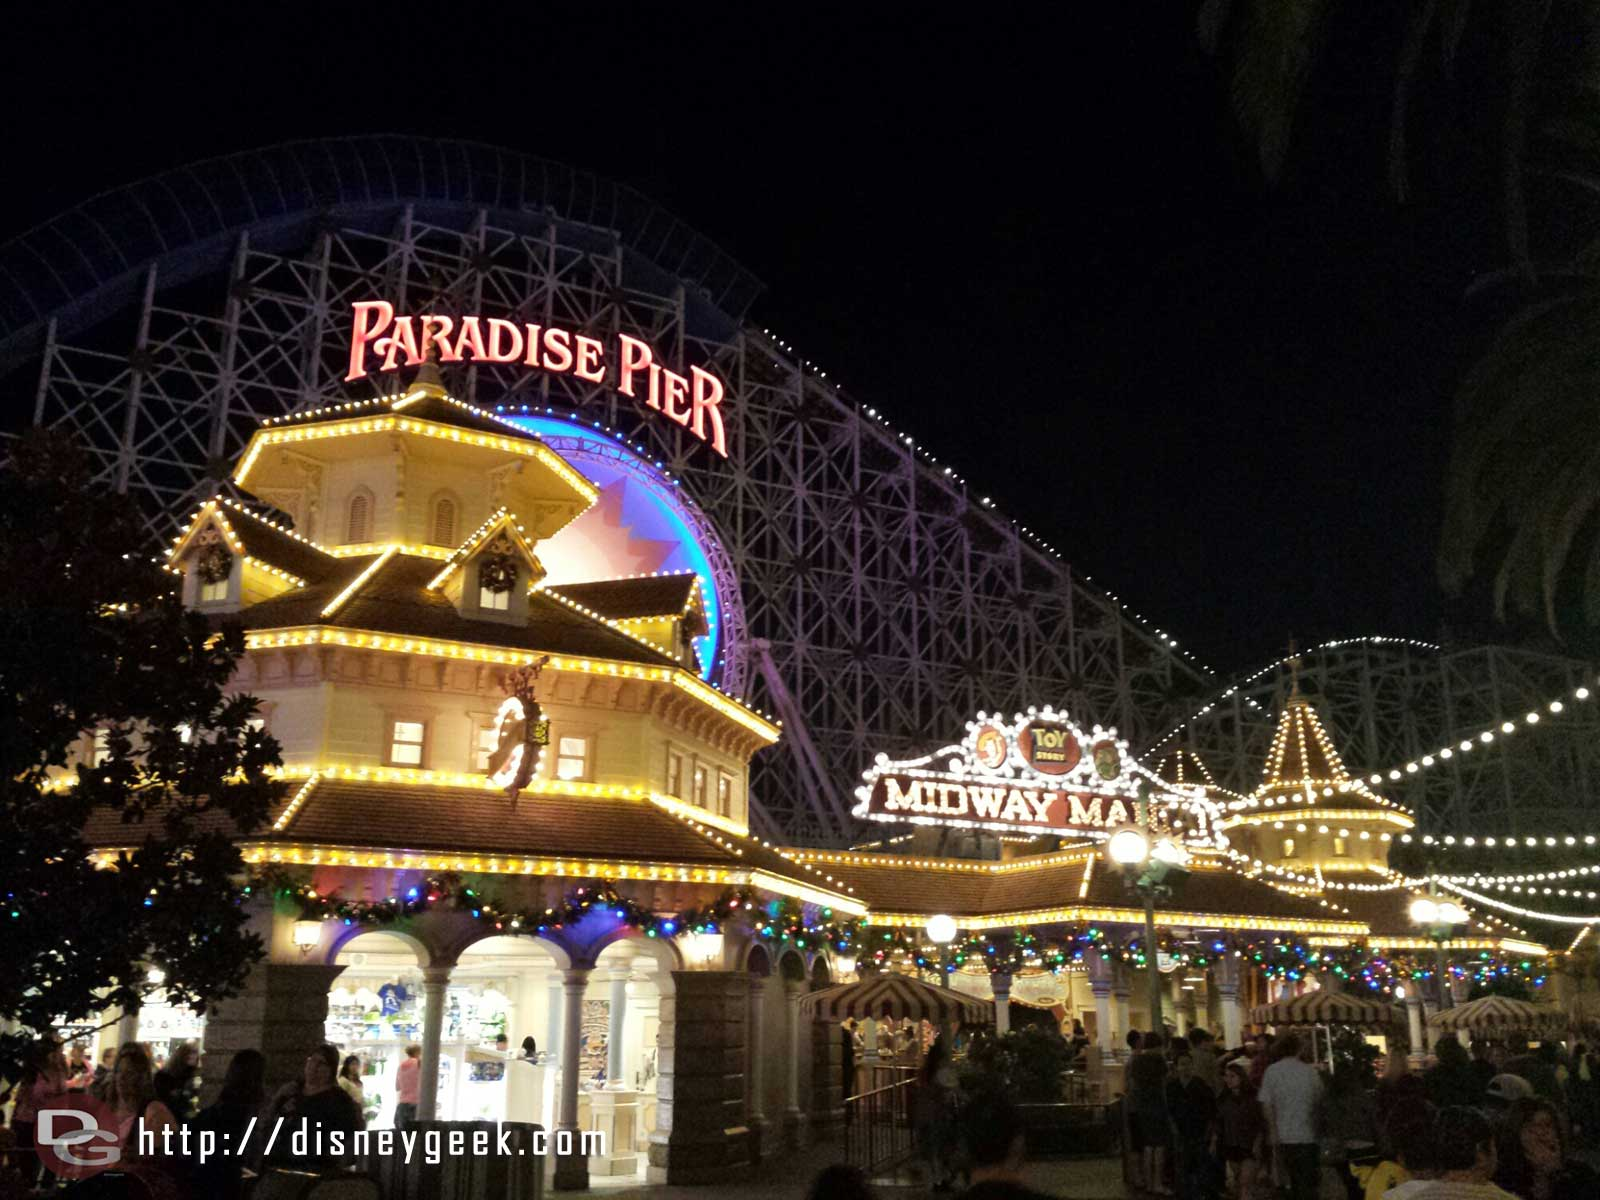 Paradise Pier has some garland and lights this year